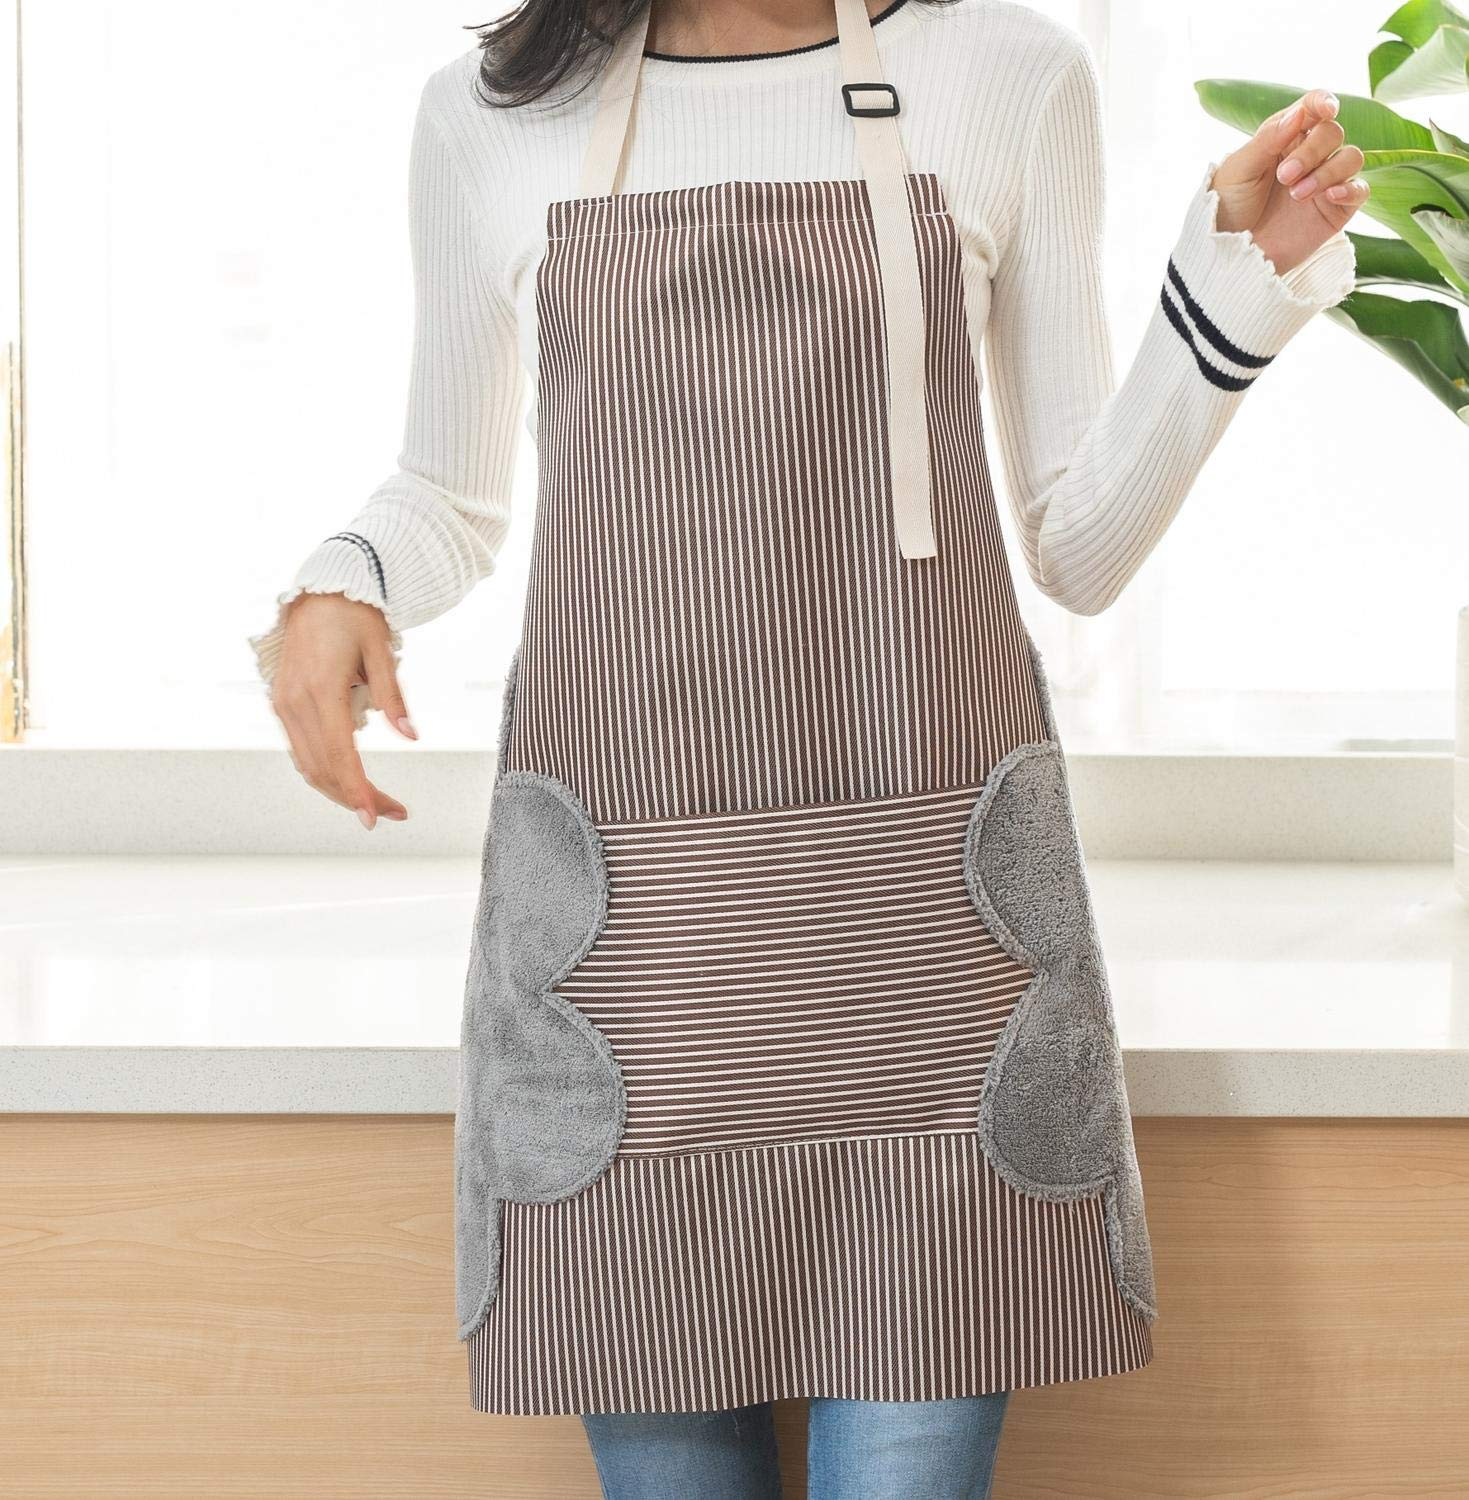 Lot-Yes Waterproof Apron with Pocket,Two Owels Stitched,Adjustable Design of The Strap for Women, Men Kitchen, Home, Cooking (Brown)